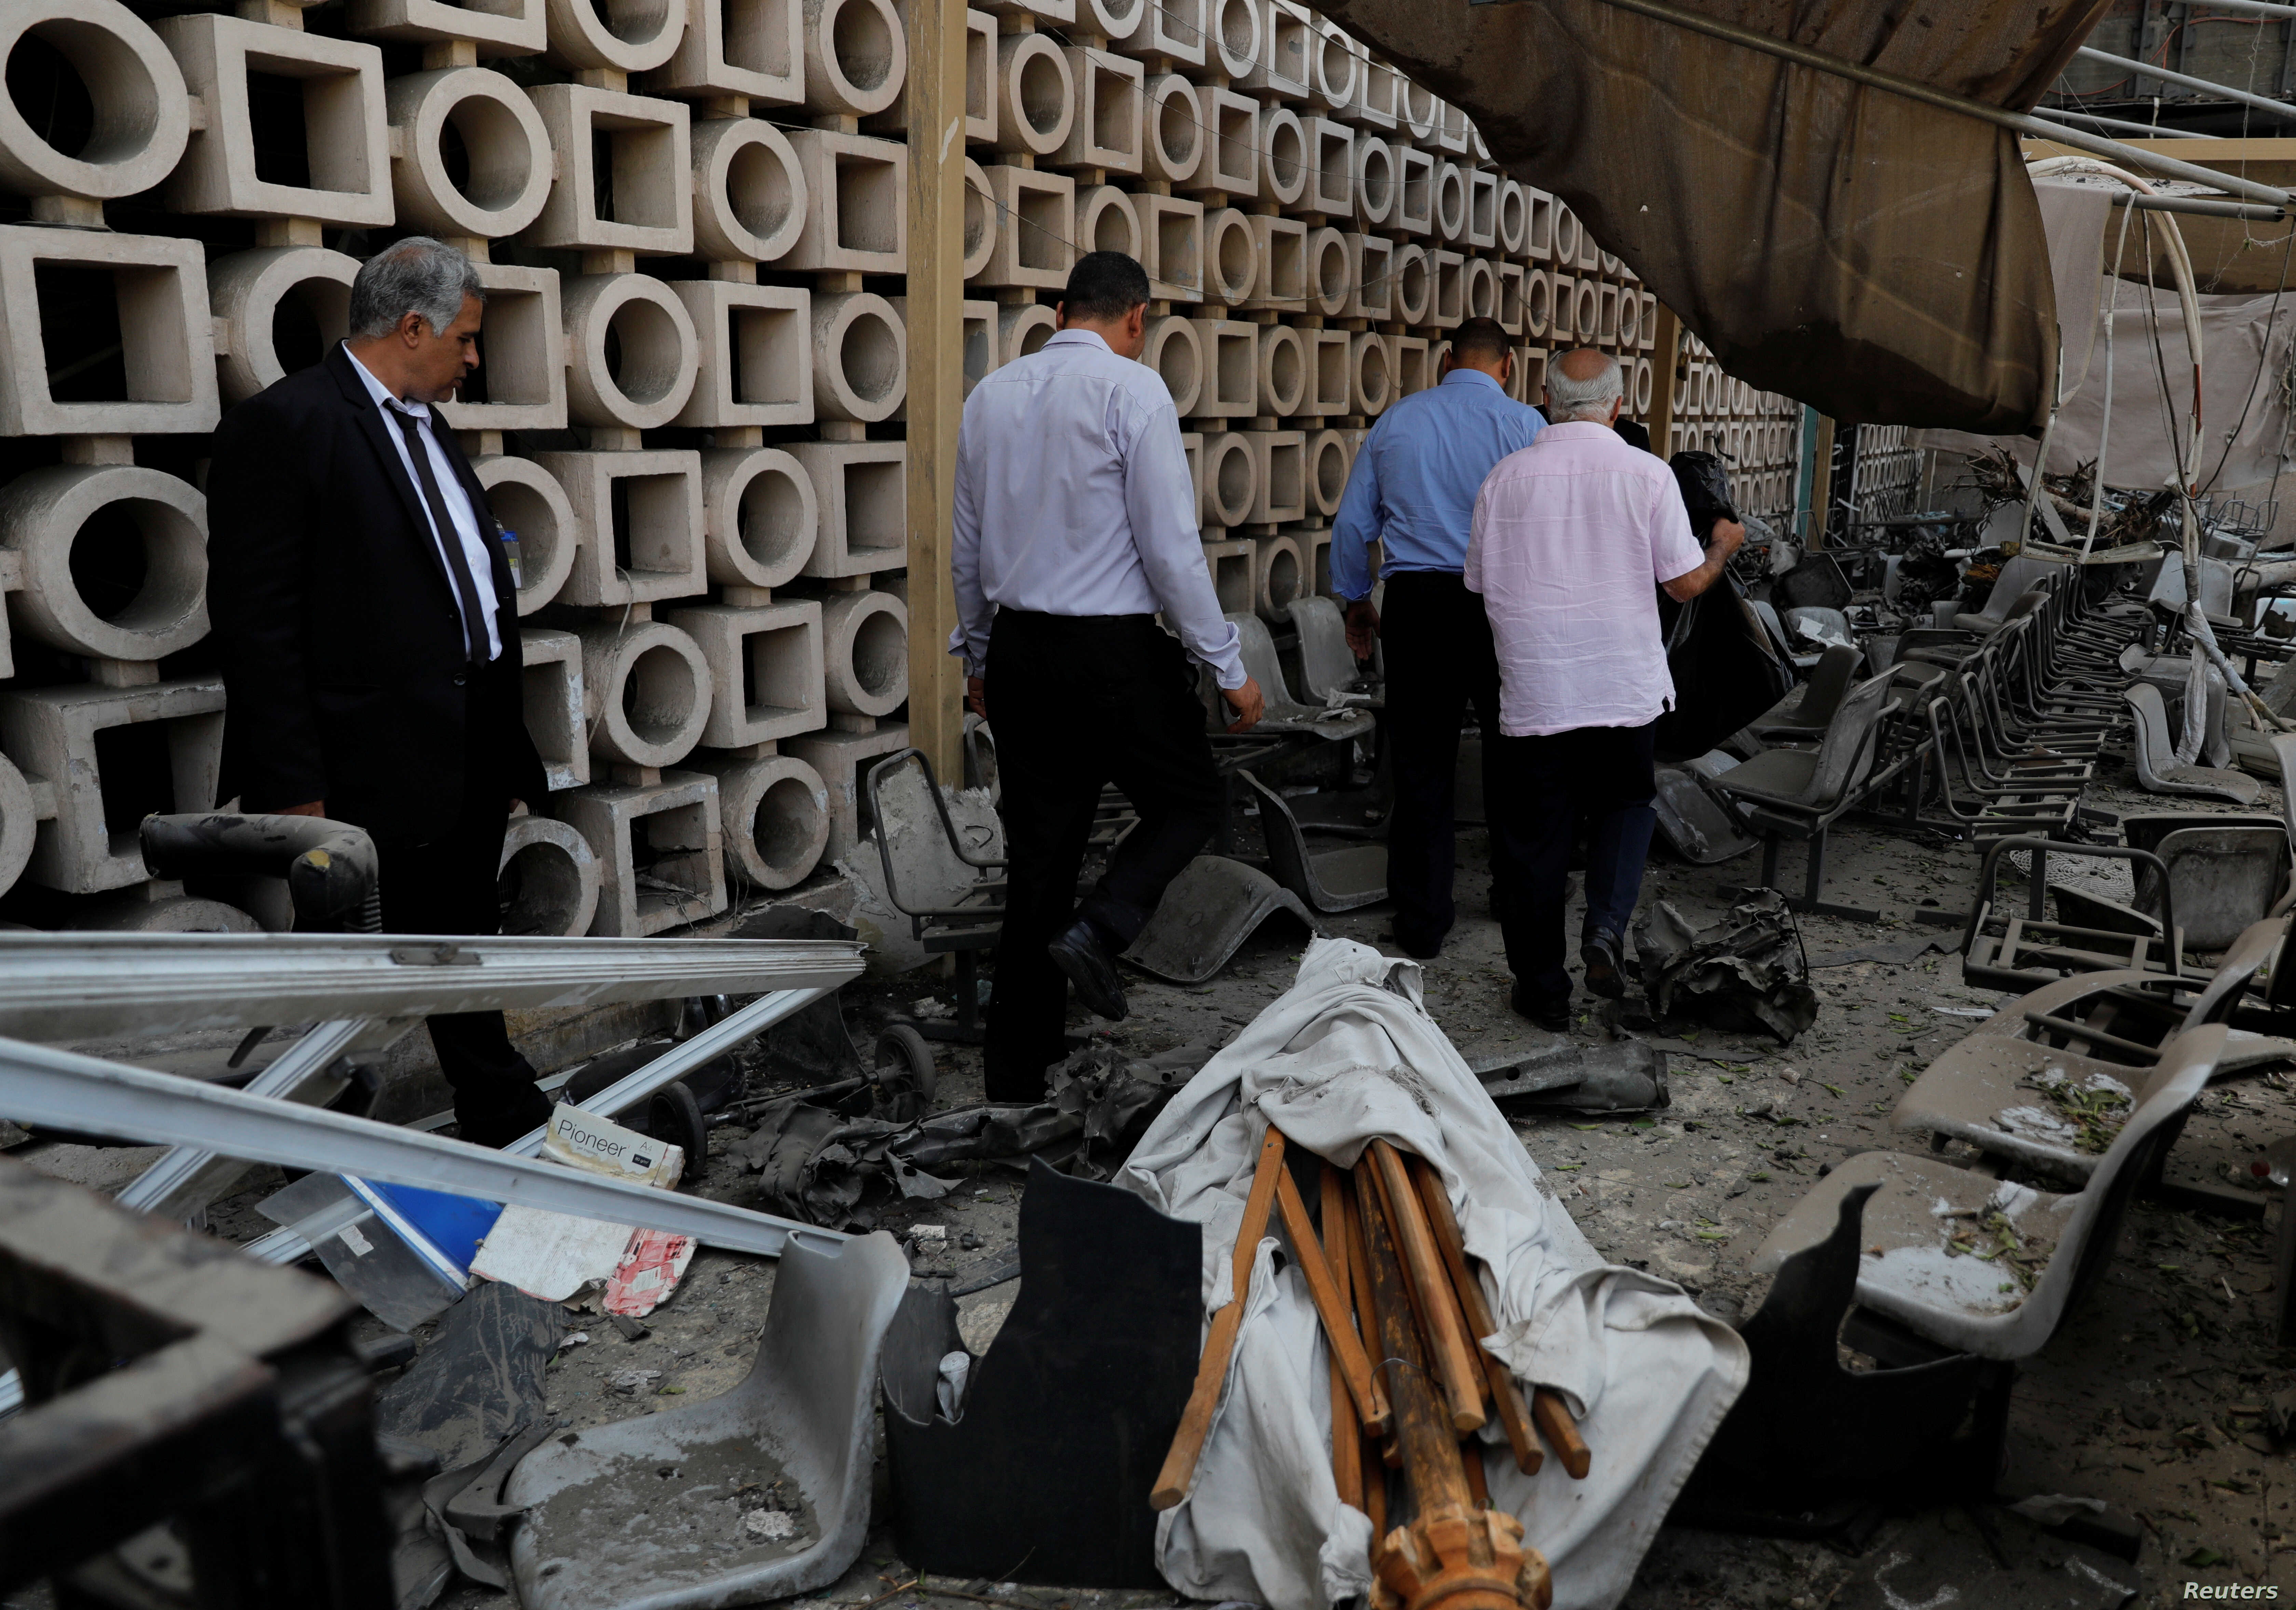 Egyptian investigators are seen in front of the damaged facade of the National Cancer Institute after an overnight fire from a blast, in Cairo, Egypt Aug. 5, 2019.